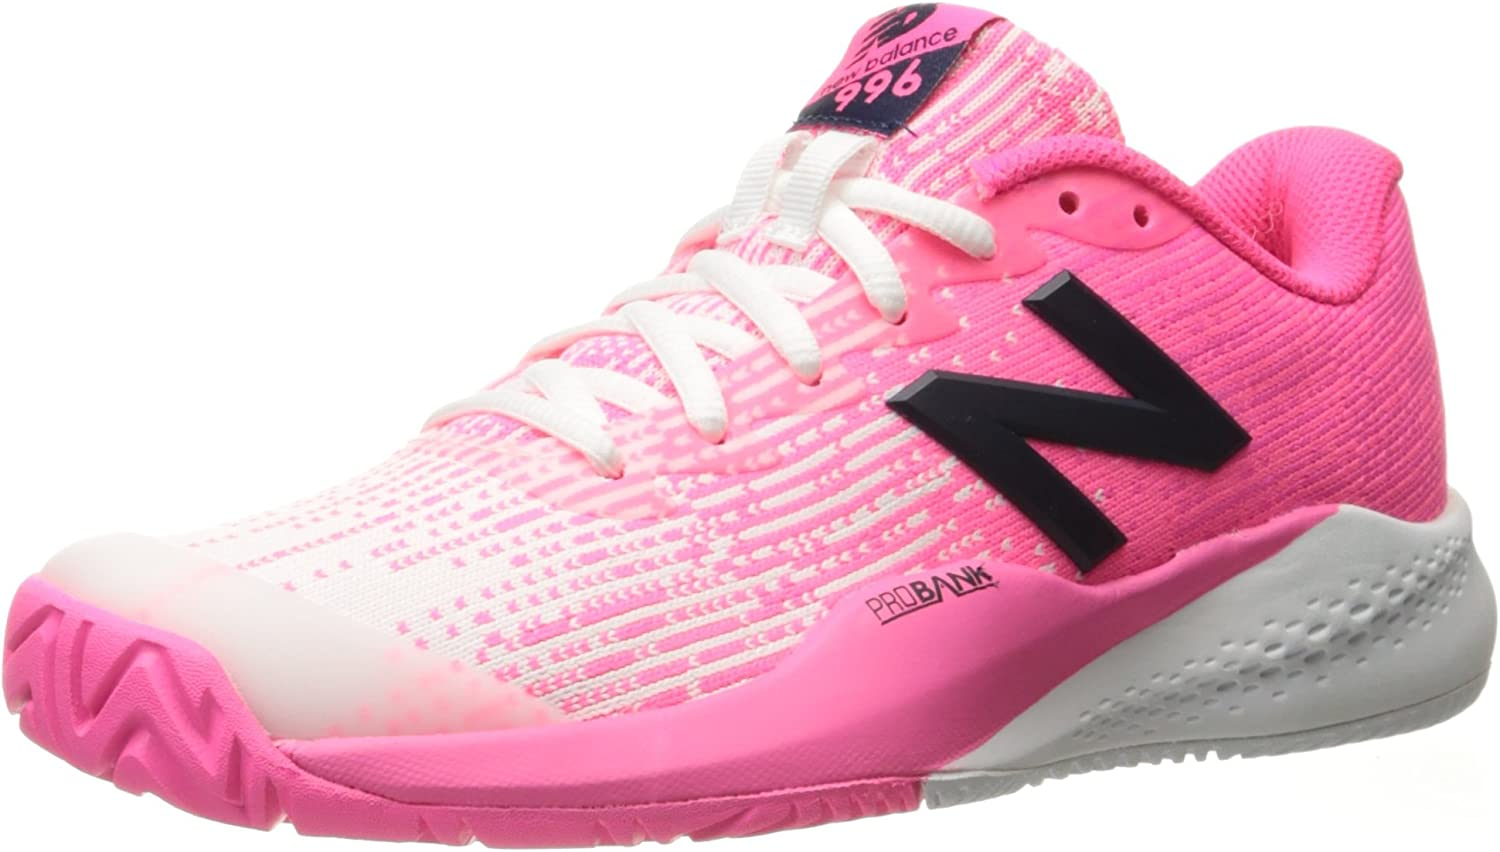 New Balance Women's WC996v3 Tennis shoes